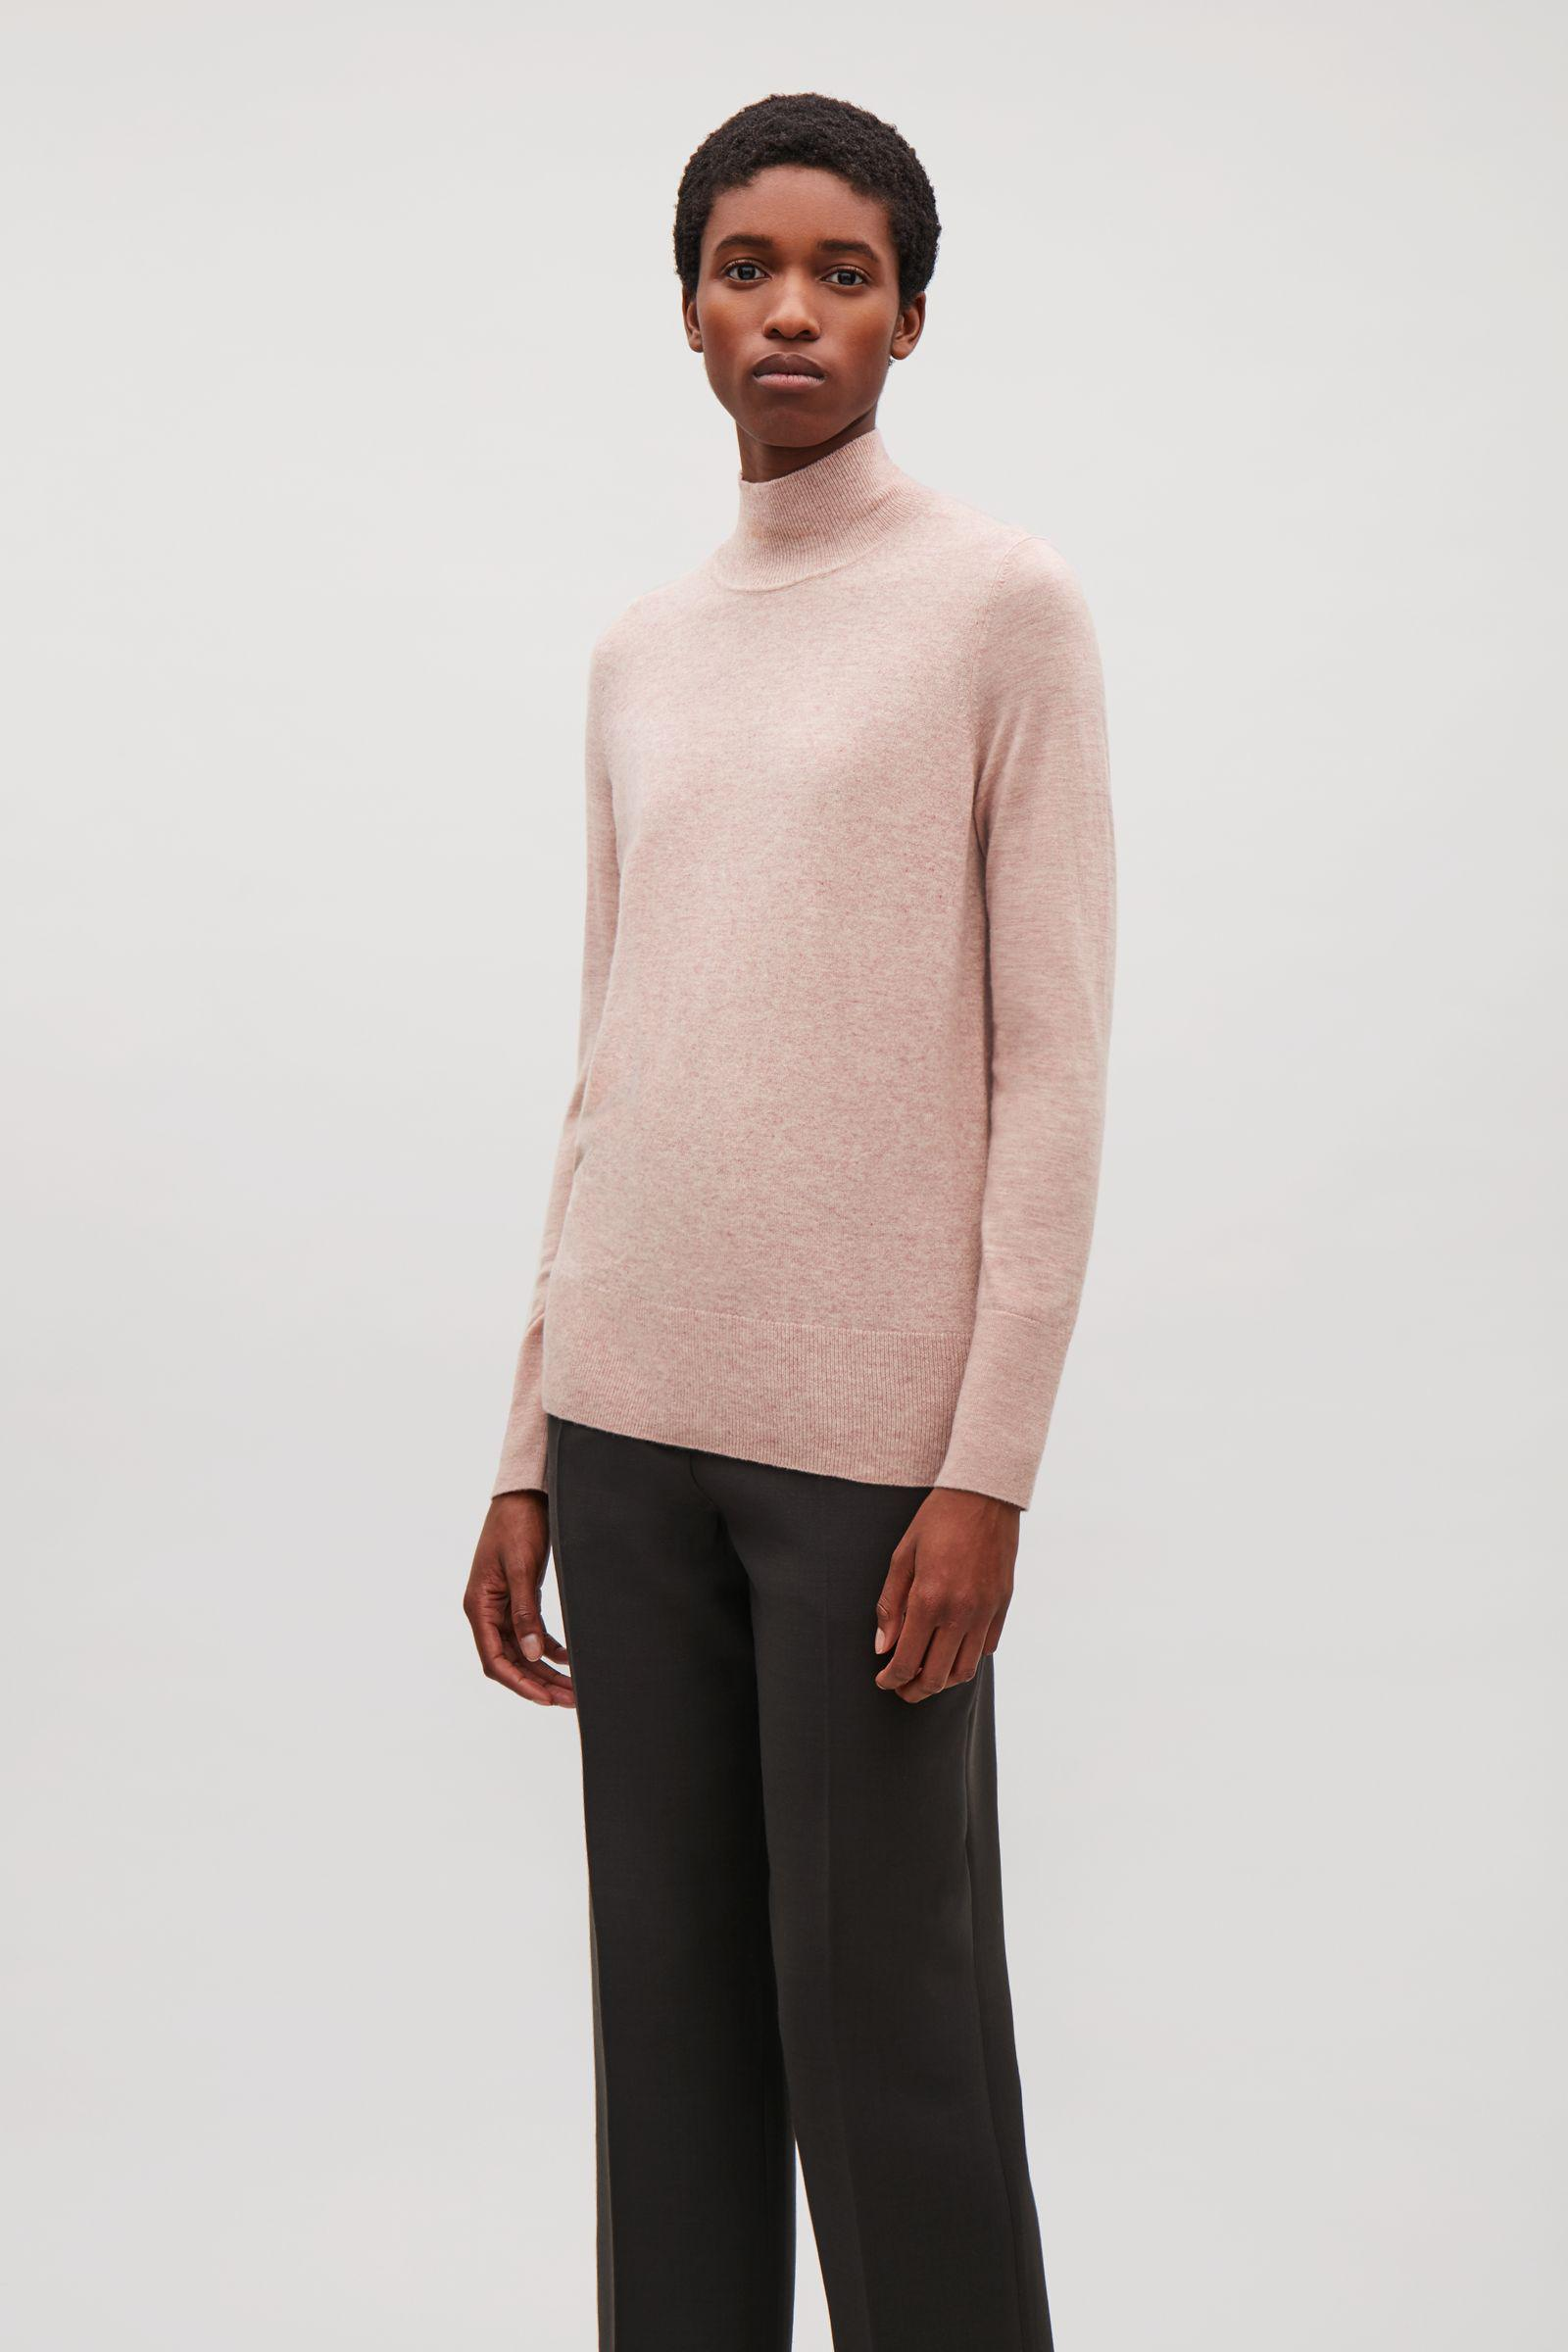 885f23a24fc1 COS High-neck Cashmere Jumper in Pink - Lyst